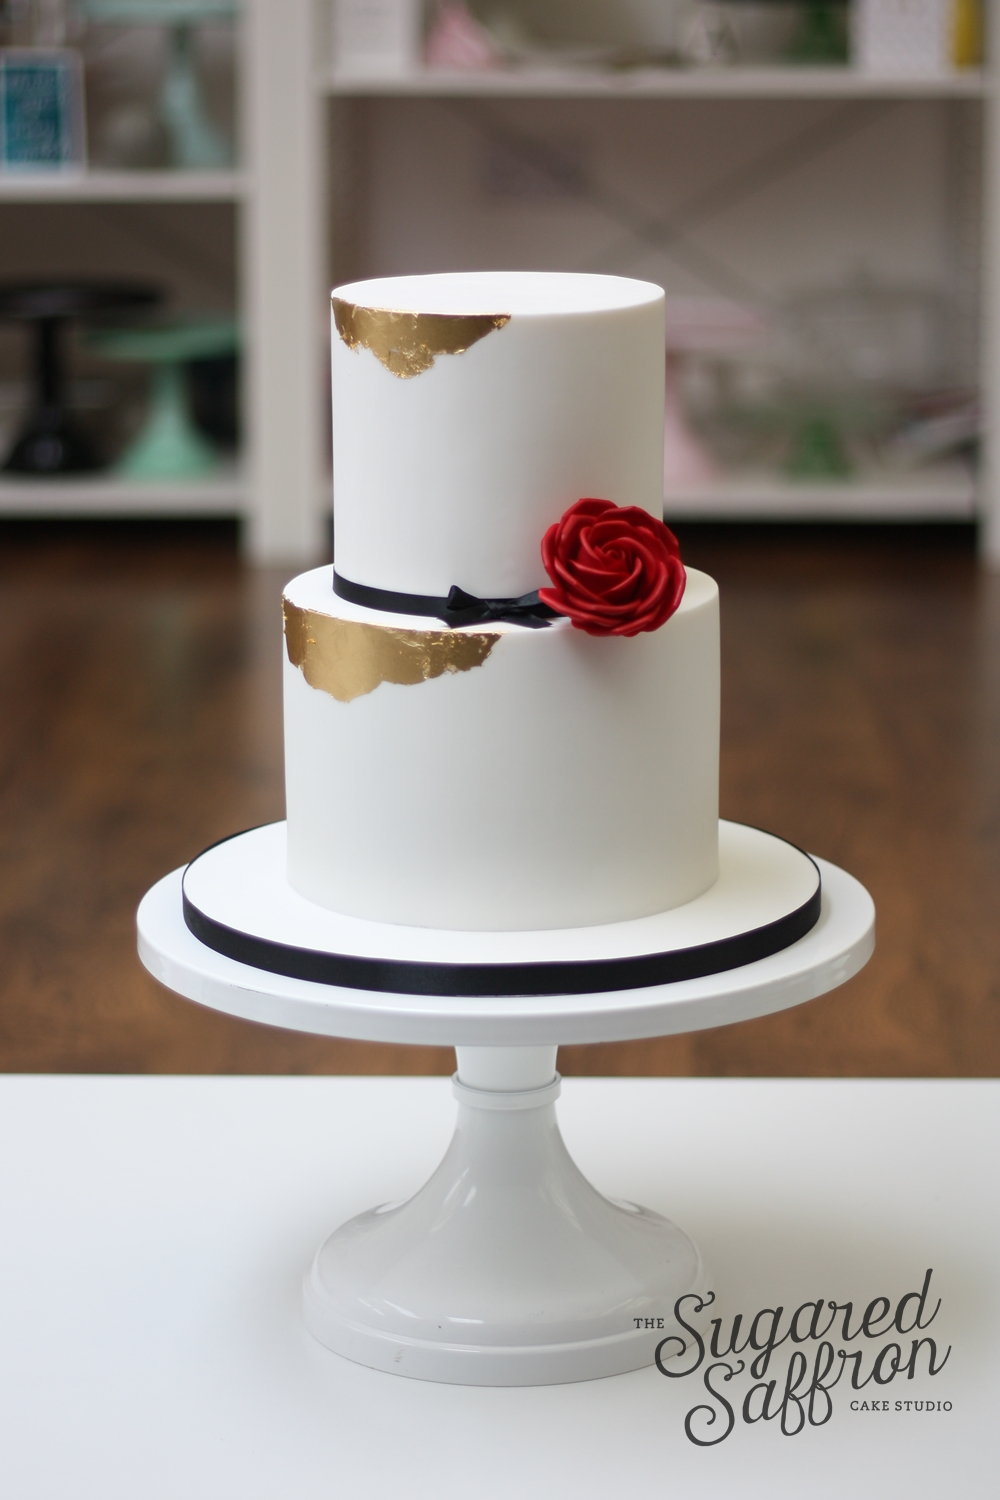 White cake with gold leaf edges and single red rose